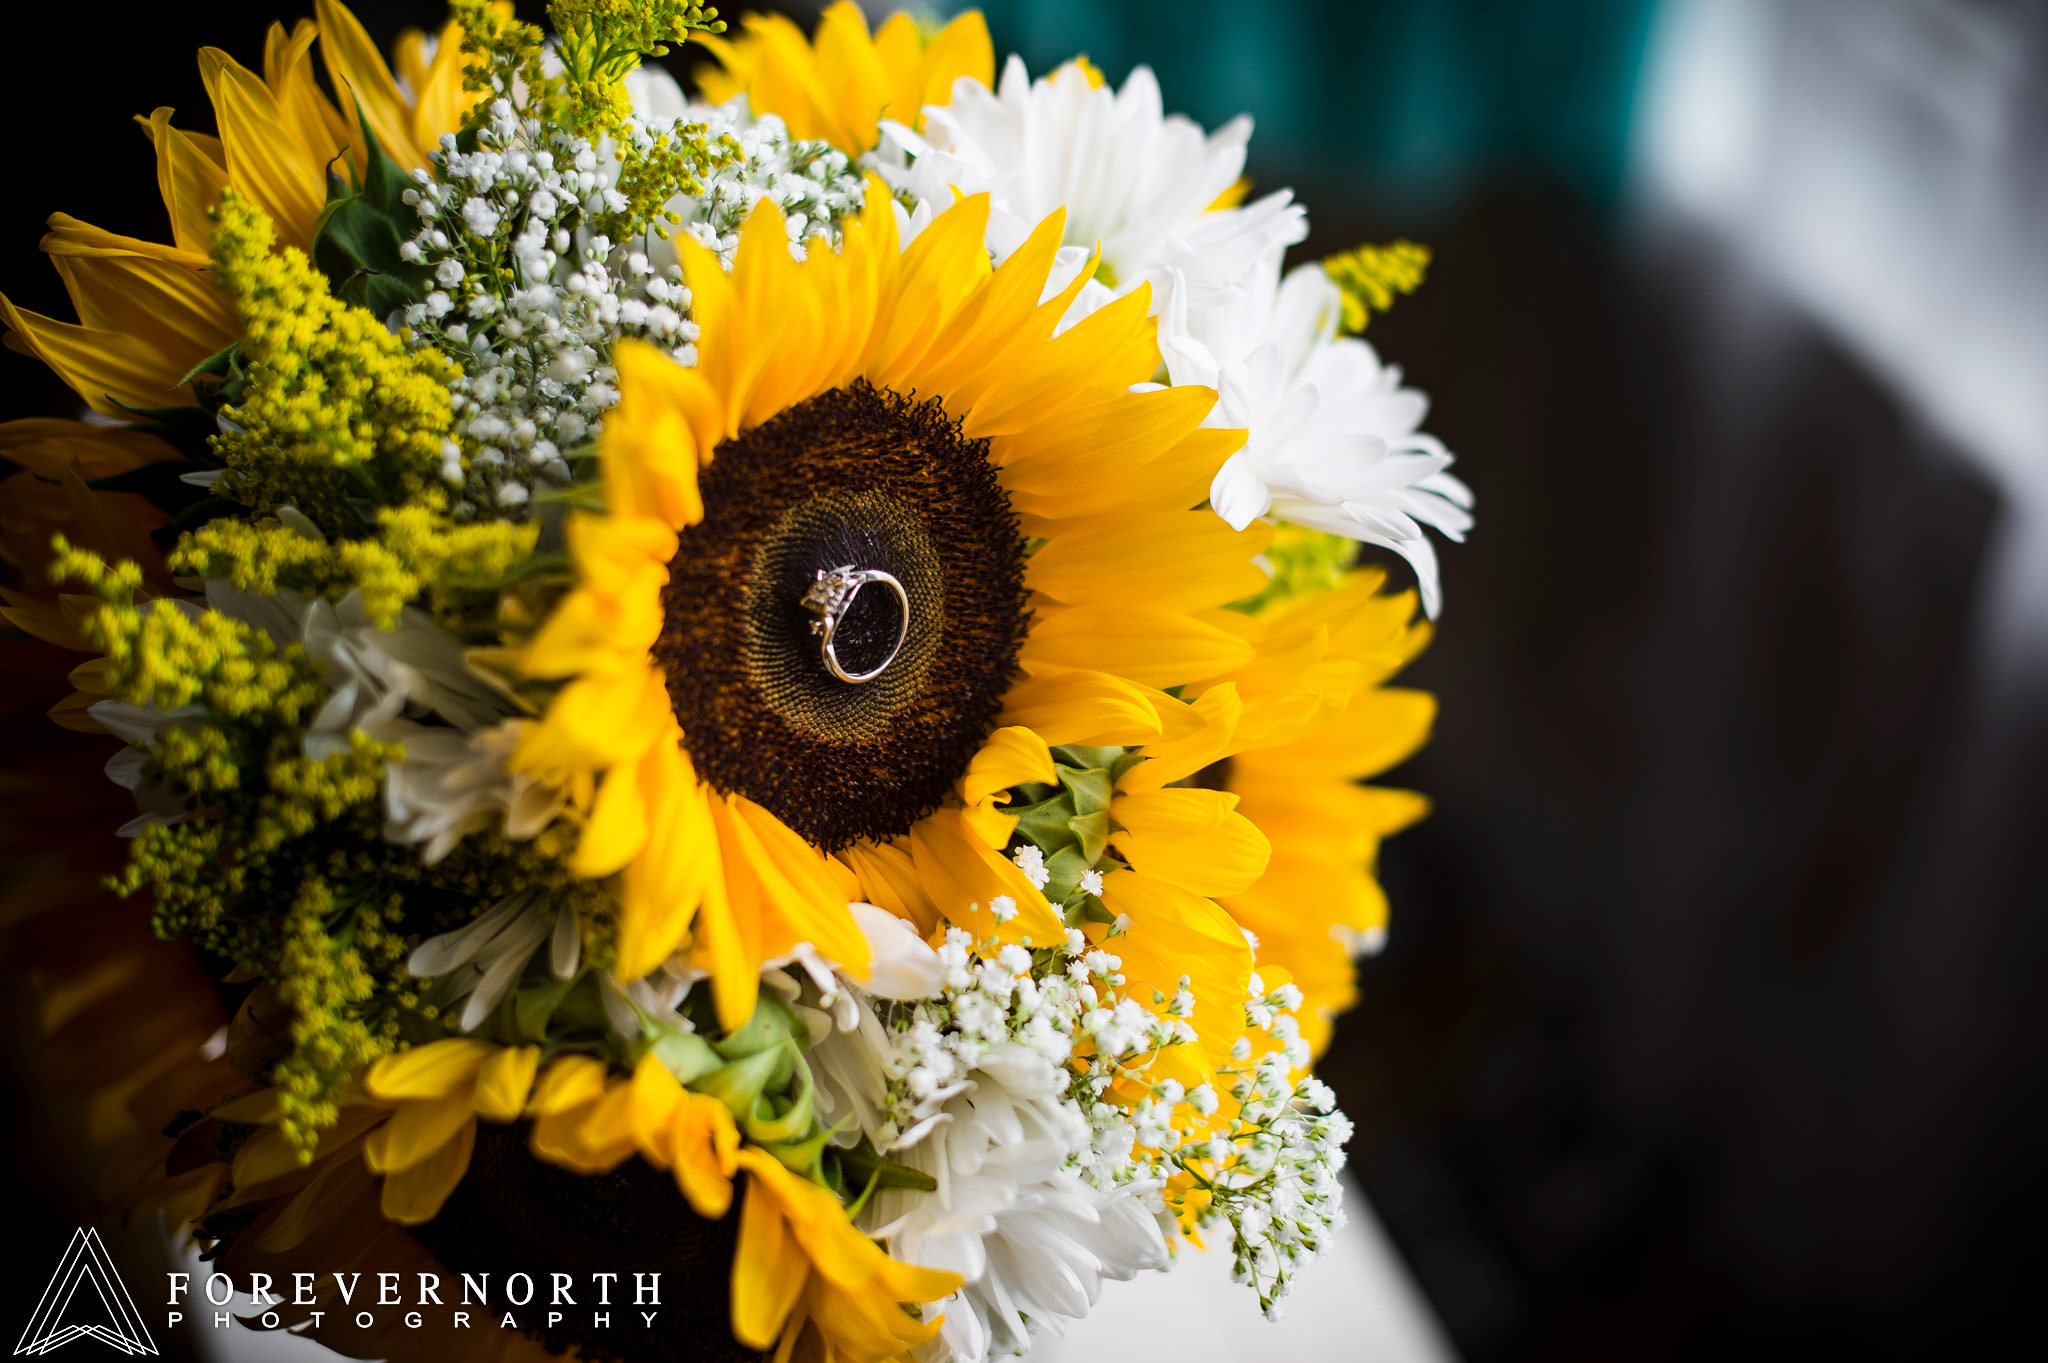 Wedding ring inside sunflower. The sunflowers are the wedding decoration